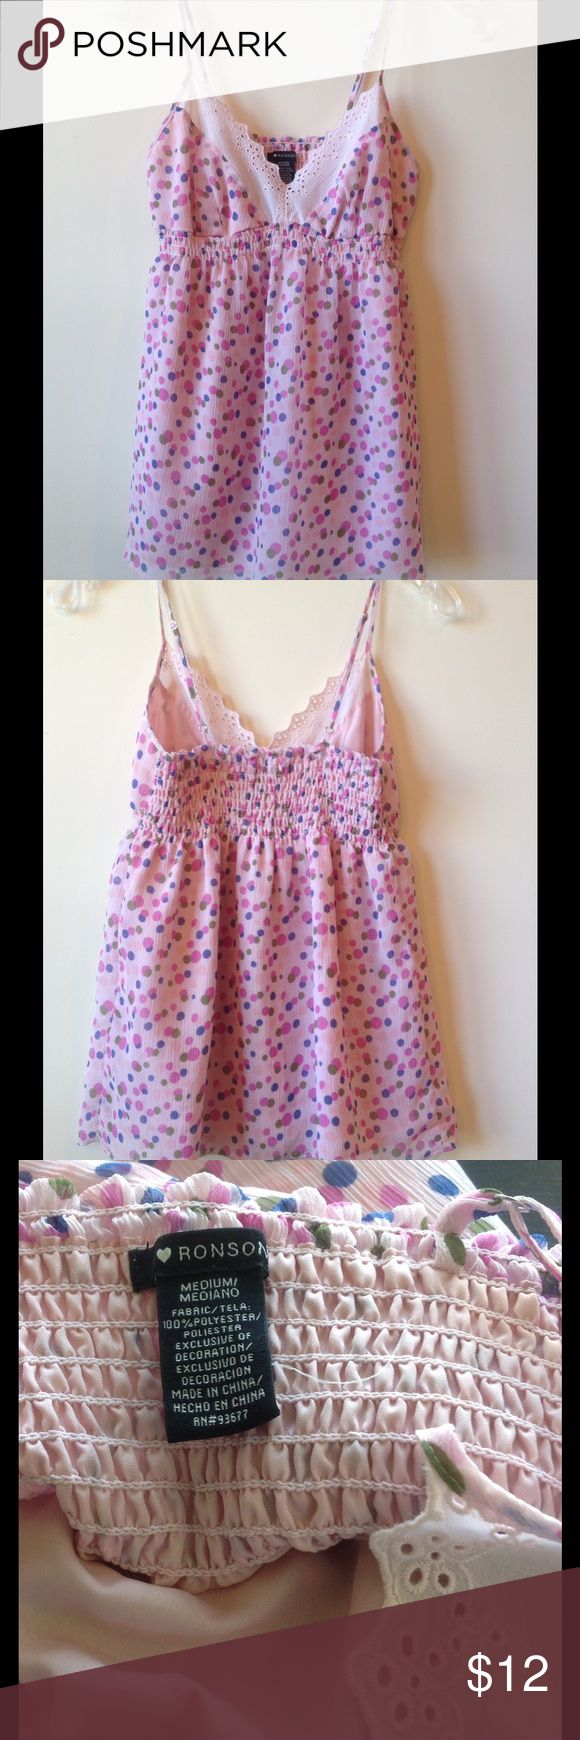 Pink Cami Top With Polka Dots - Size M Elastic under bodice with spaghetti straps, this top has a lining. Ronson Tops Camisoles